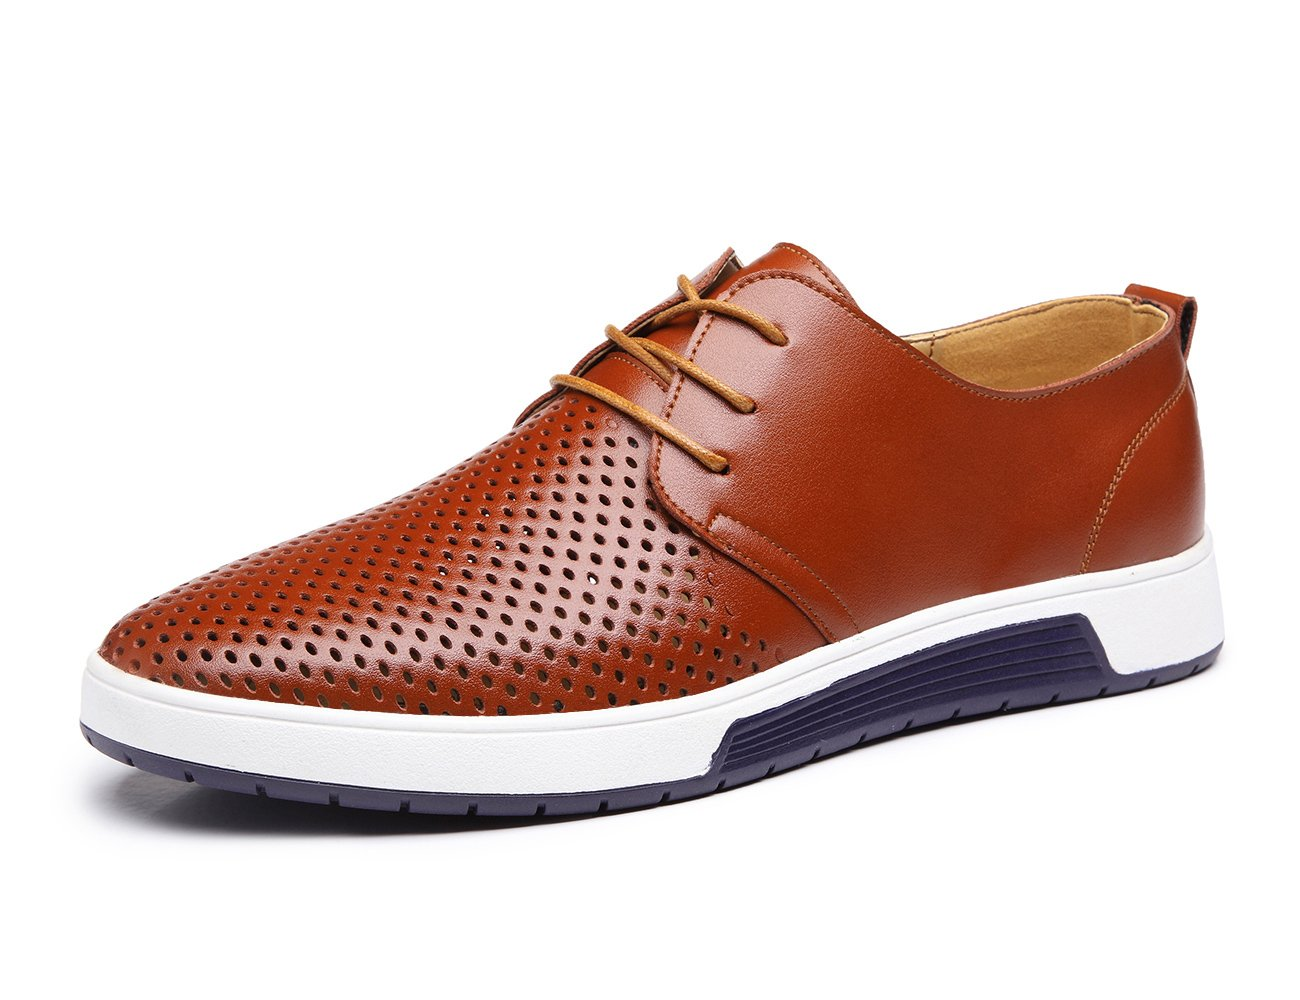 XMWEALTHY Men's British Style Breathable Flat Dress Shoes Brown US 11.5